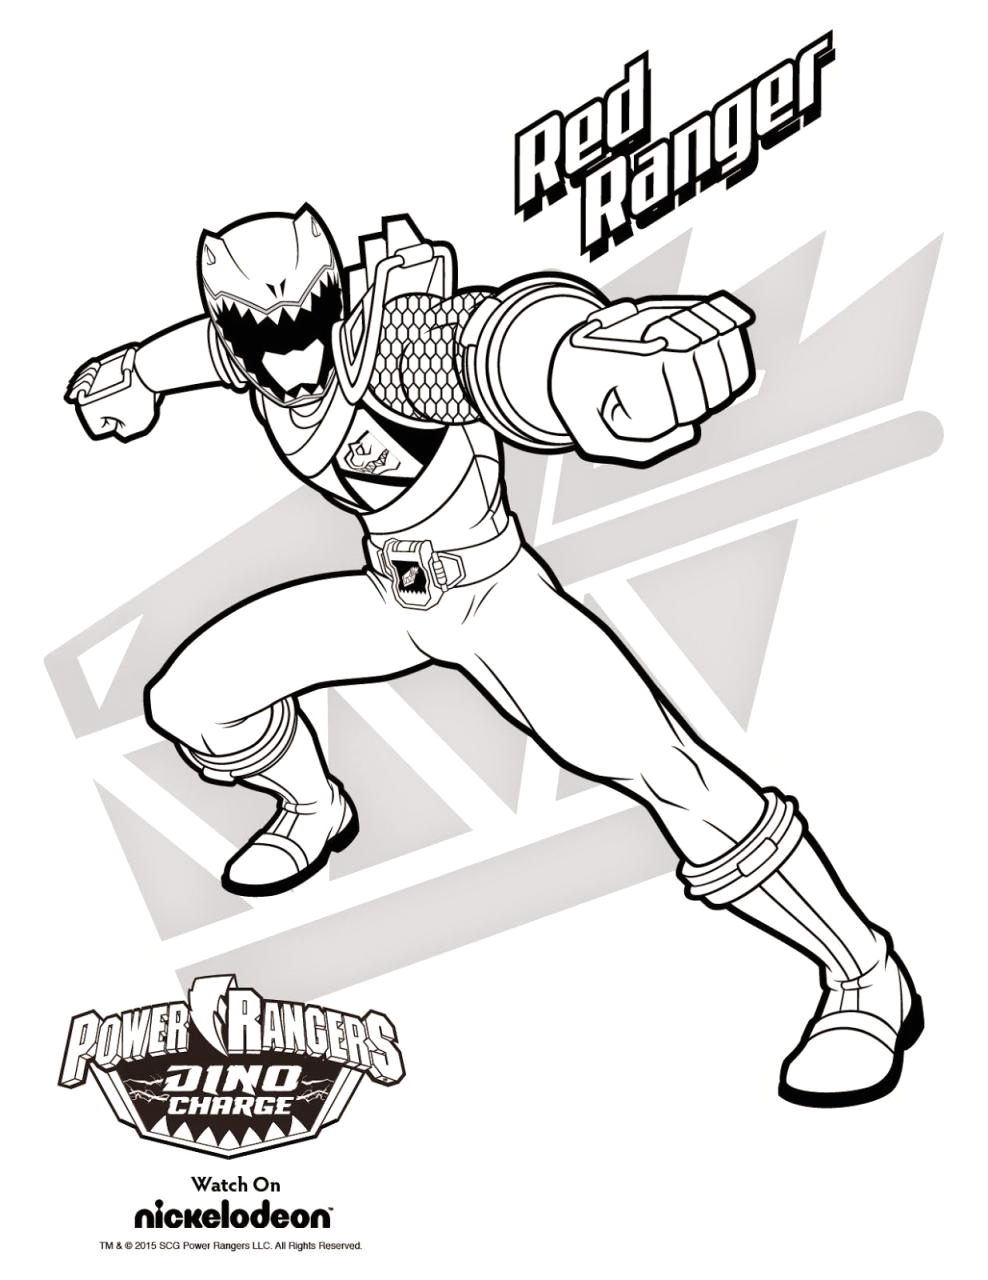 megazord power rangers dino charge coloring pages